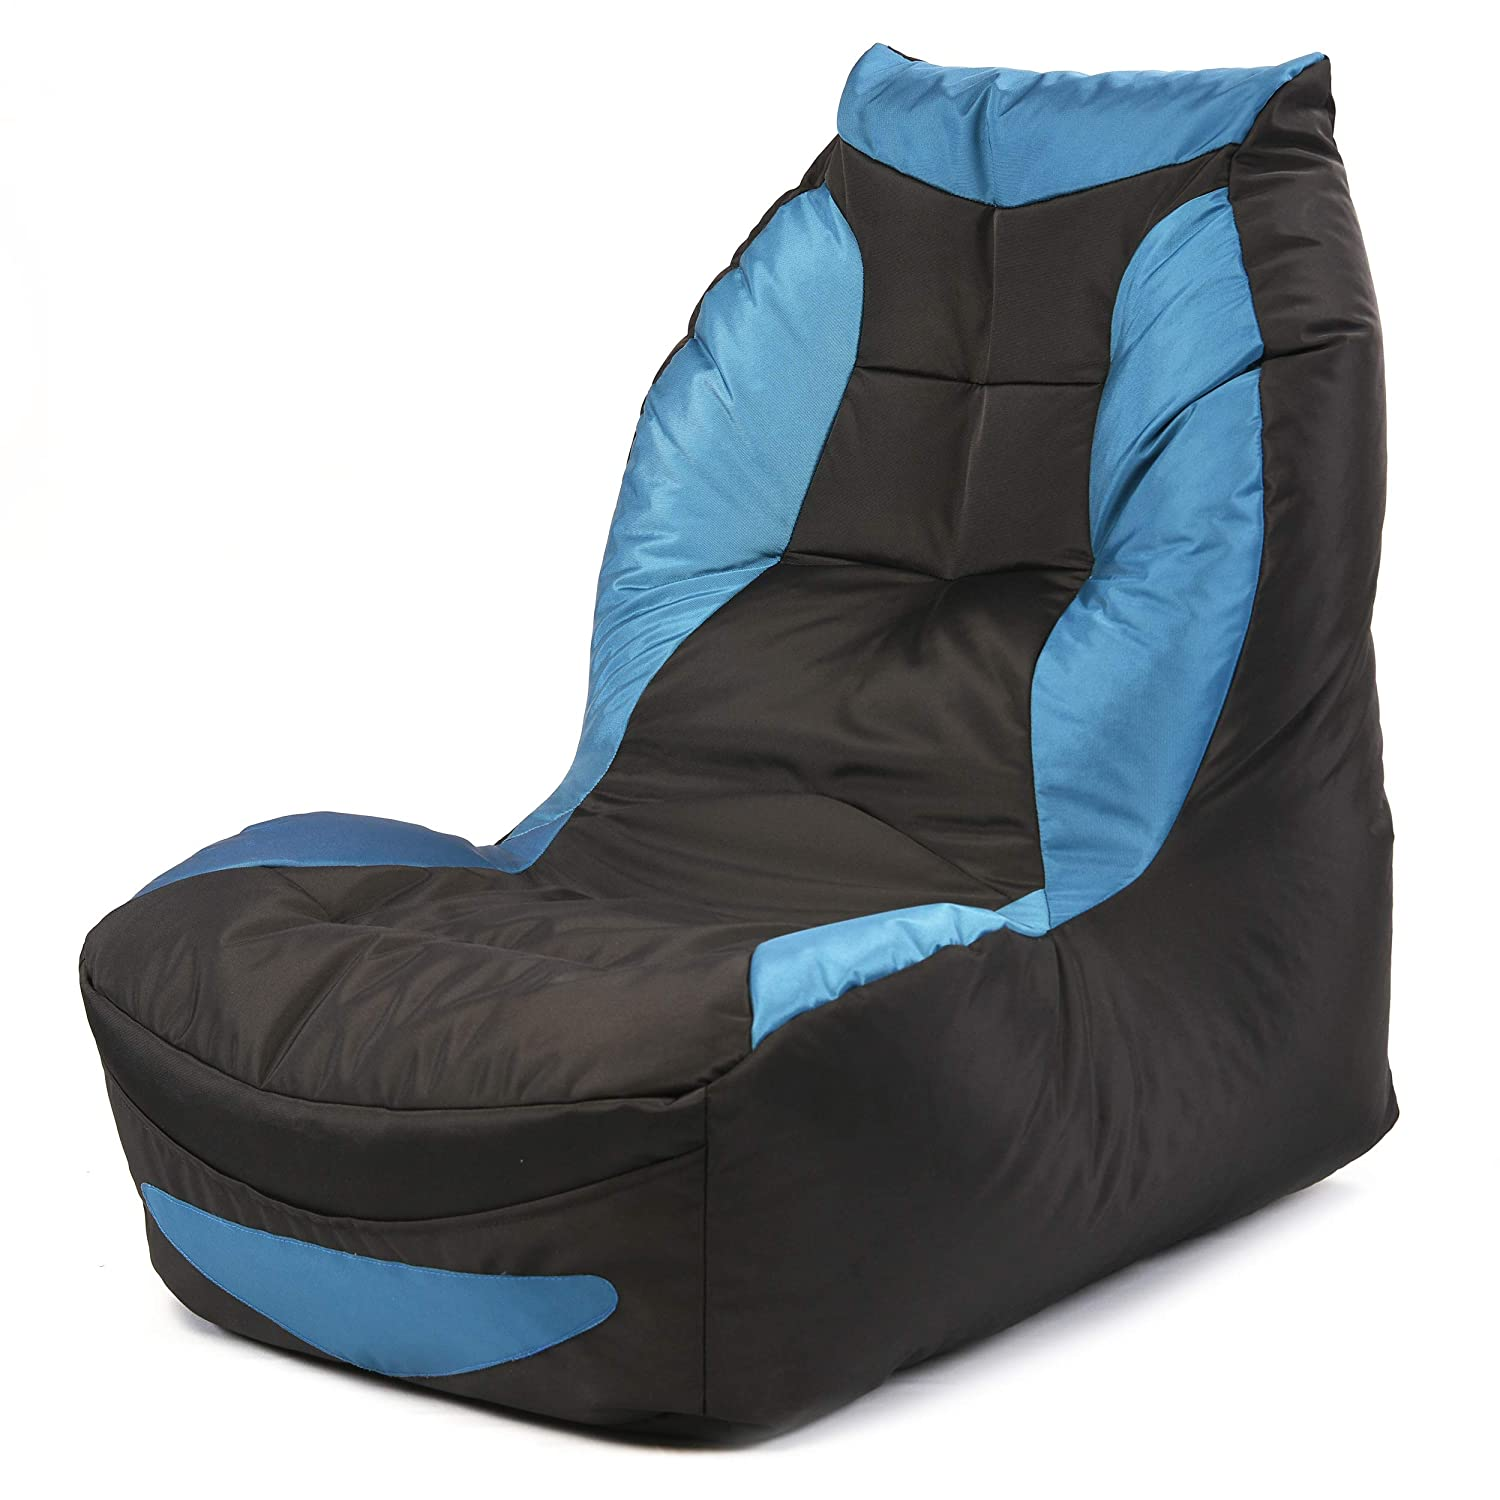 Best Comfortable Gaming Chair India 2021 - Review & Features